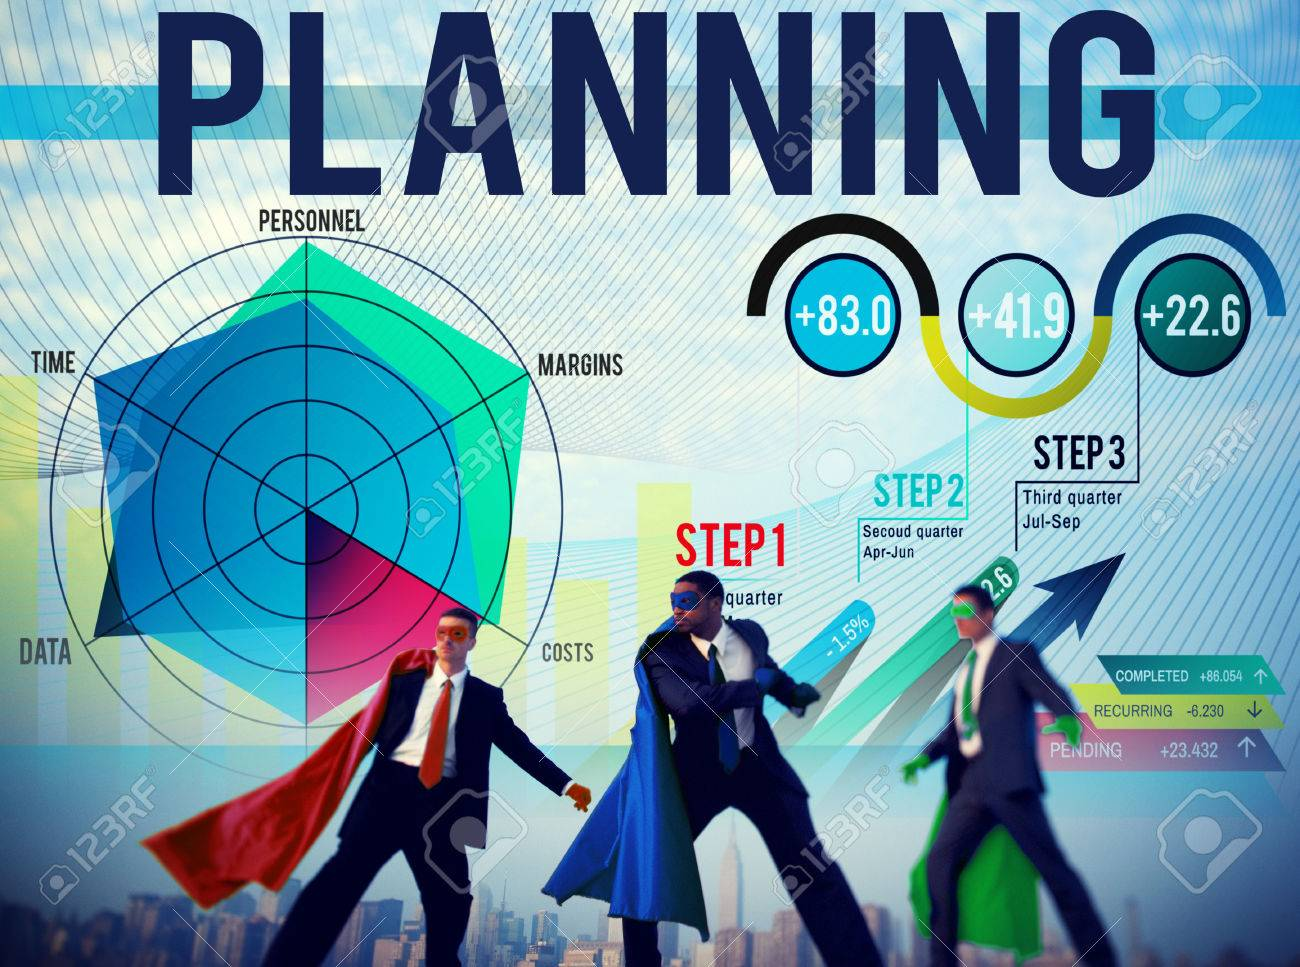 Business planning and analysis